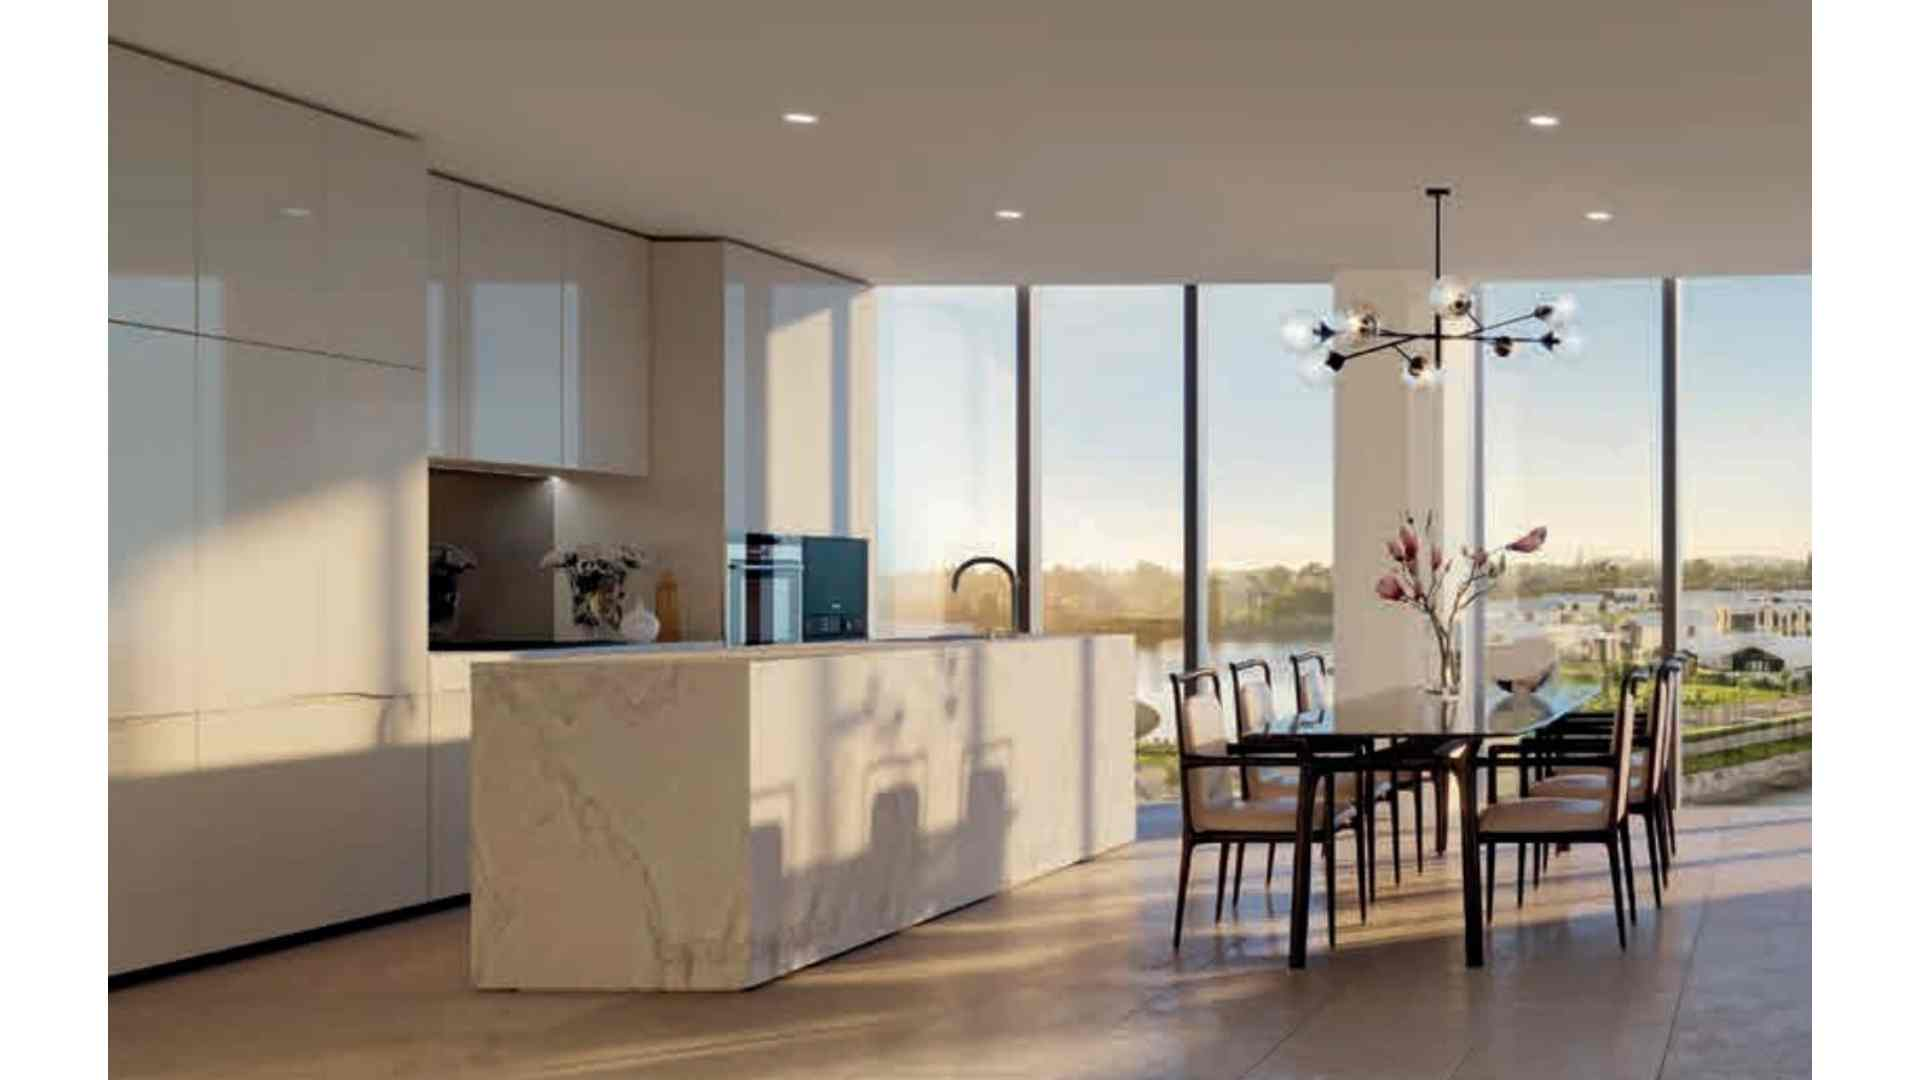 island kitchen next to large dining area space with natural light